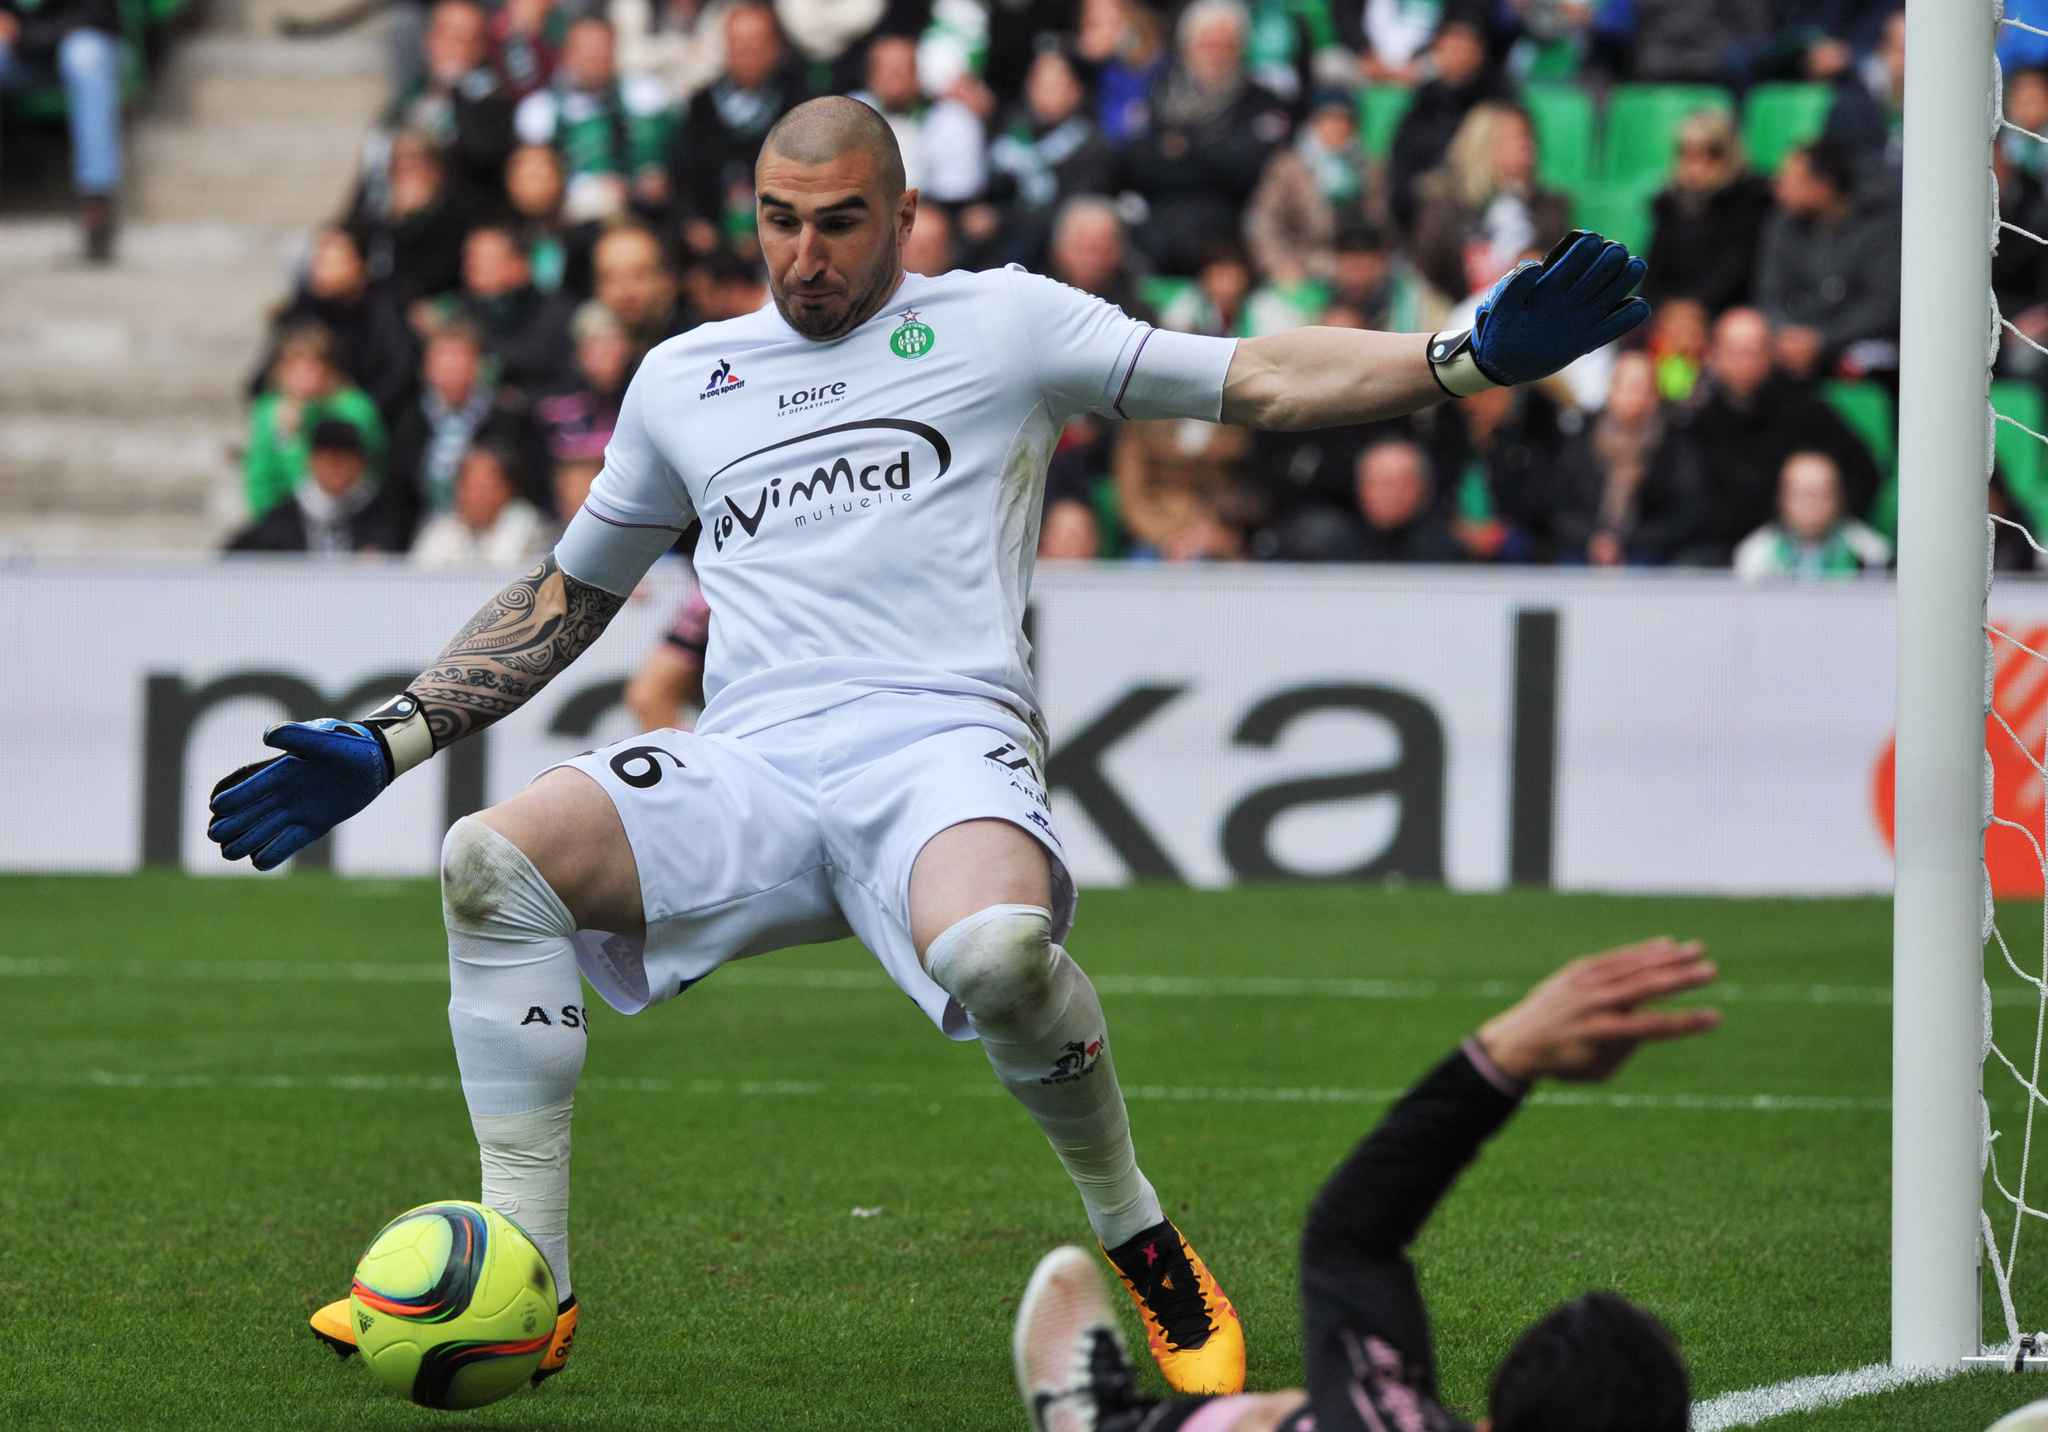 2048x1536-fit_saint-etienne-s-french-goalkeeper-stephane-ruffier-c-stops-the-ball-during-the-french-l1-football